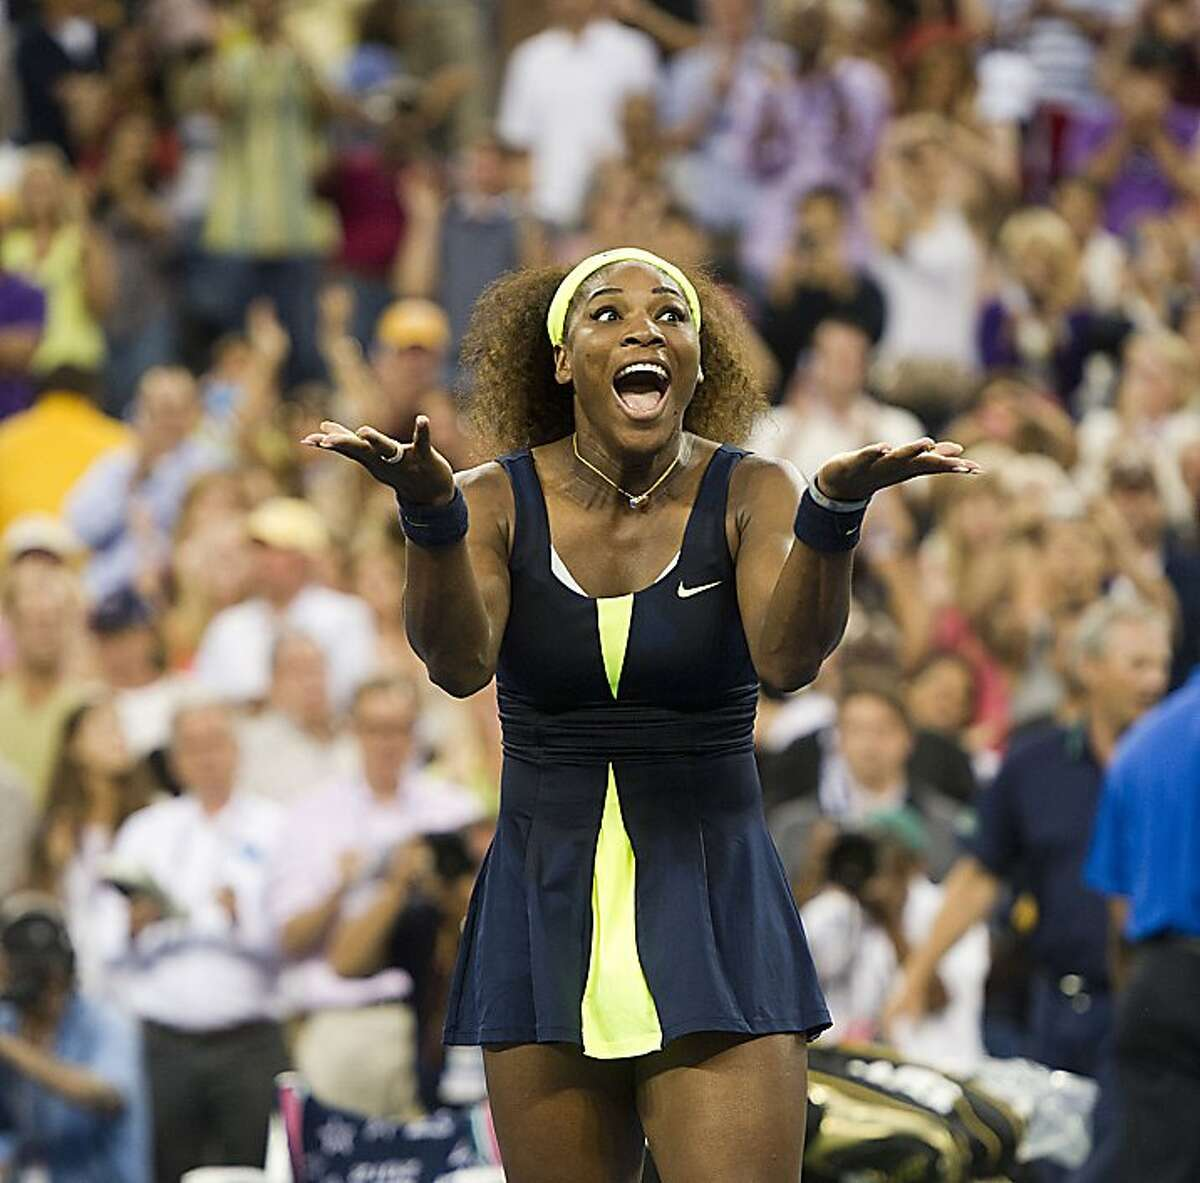 Serena Williams defeats Victoria Azarenka in the women's finals of the US Open tennis tournament at the USTA Billie Jean King National Tennis Center in Flushing Meadow, New York, Sunday, September 9, 2012. (J. Conrad Williams Jr./Newsday/MCT)